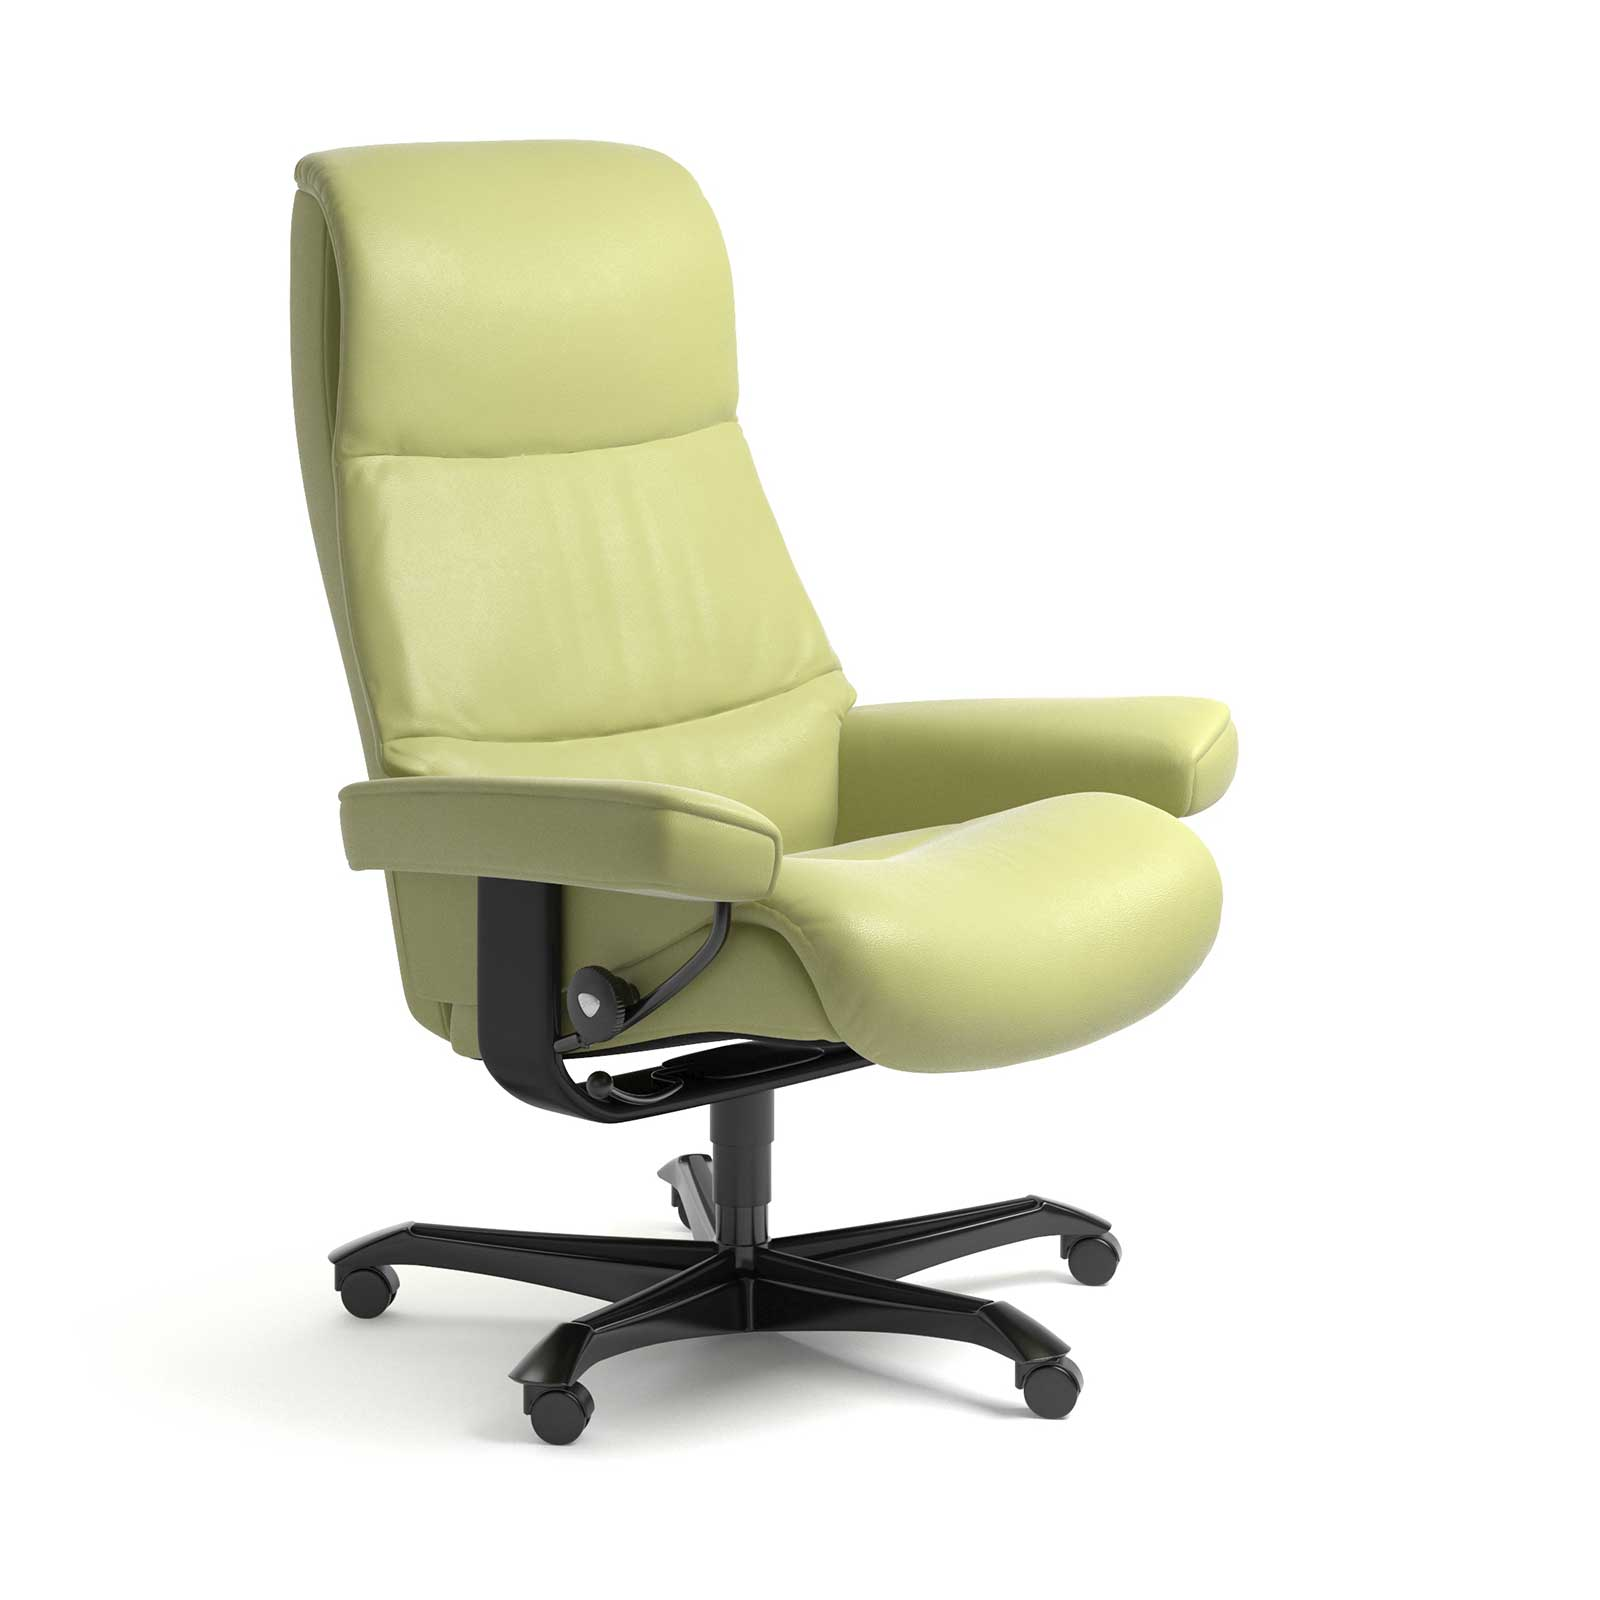 Stressless Bürostuhl Stressless Sessel View Home Office Paloma Amber Green Büro